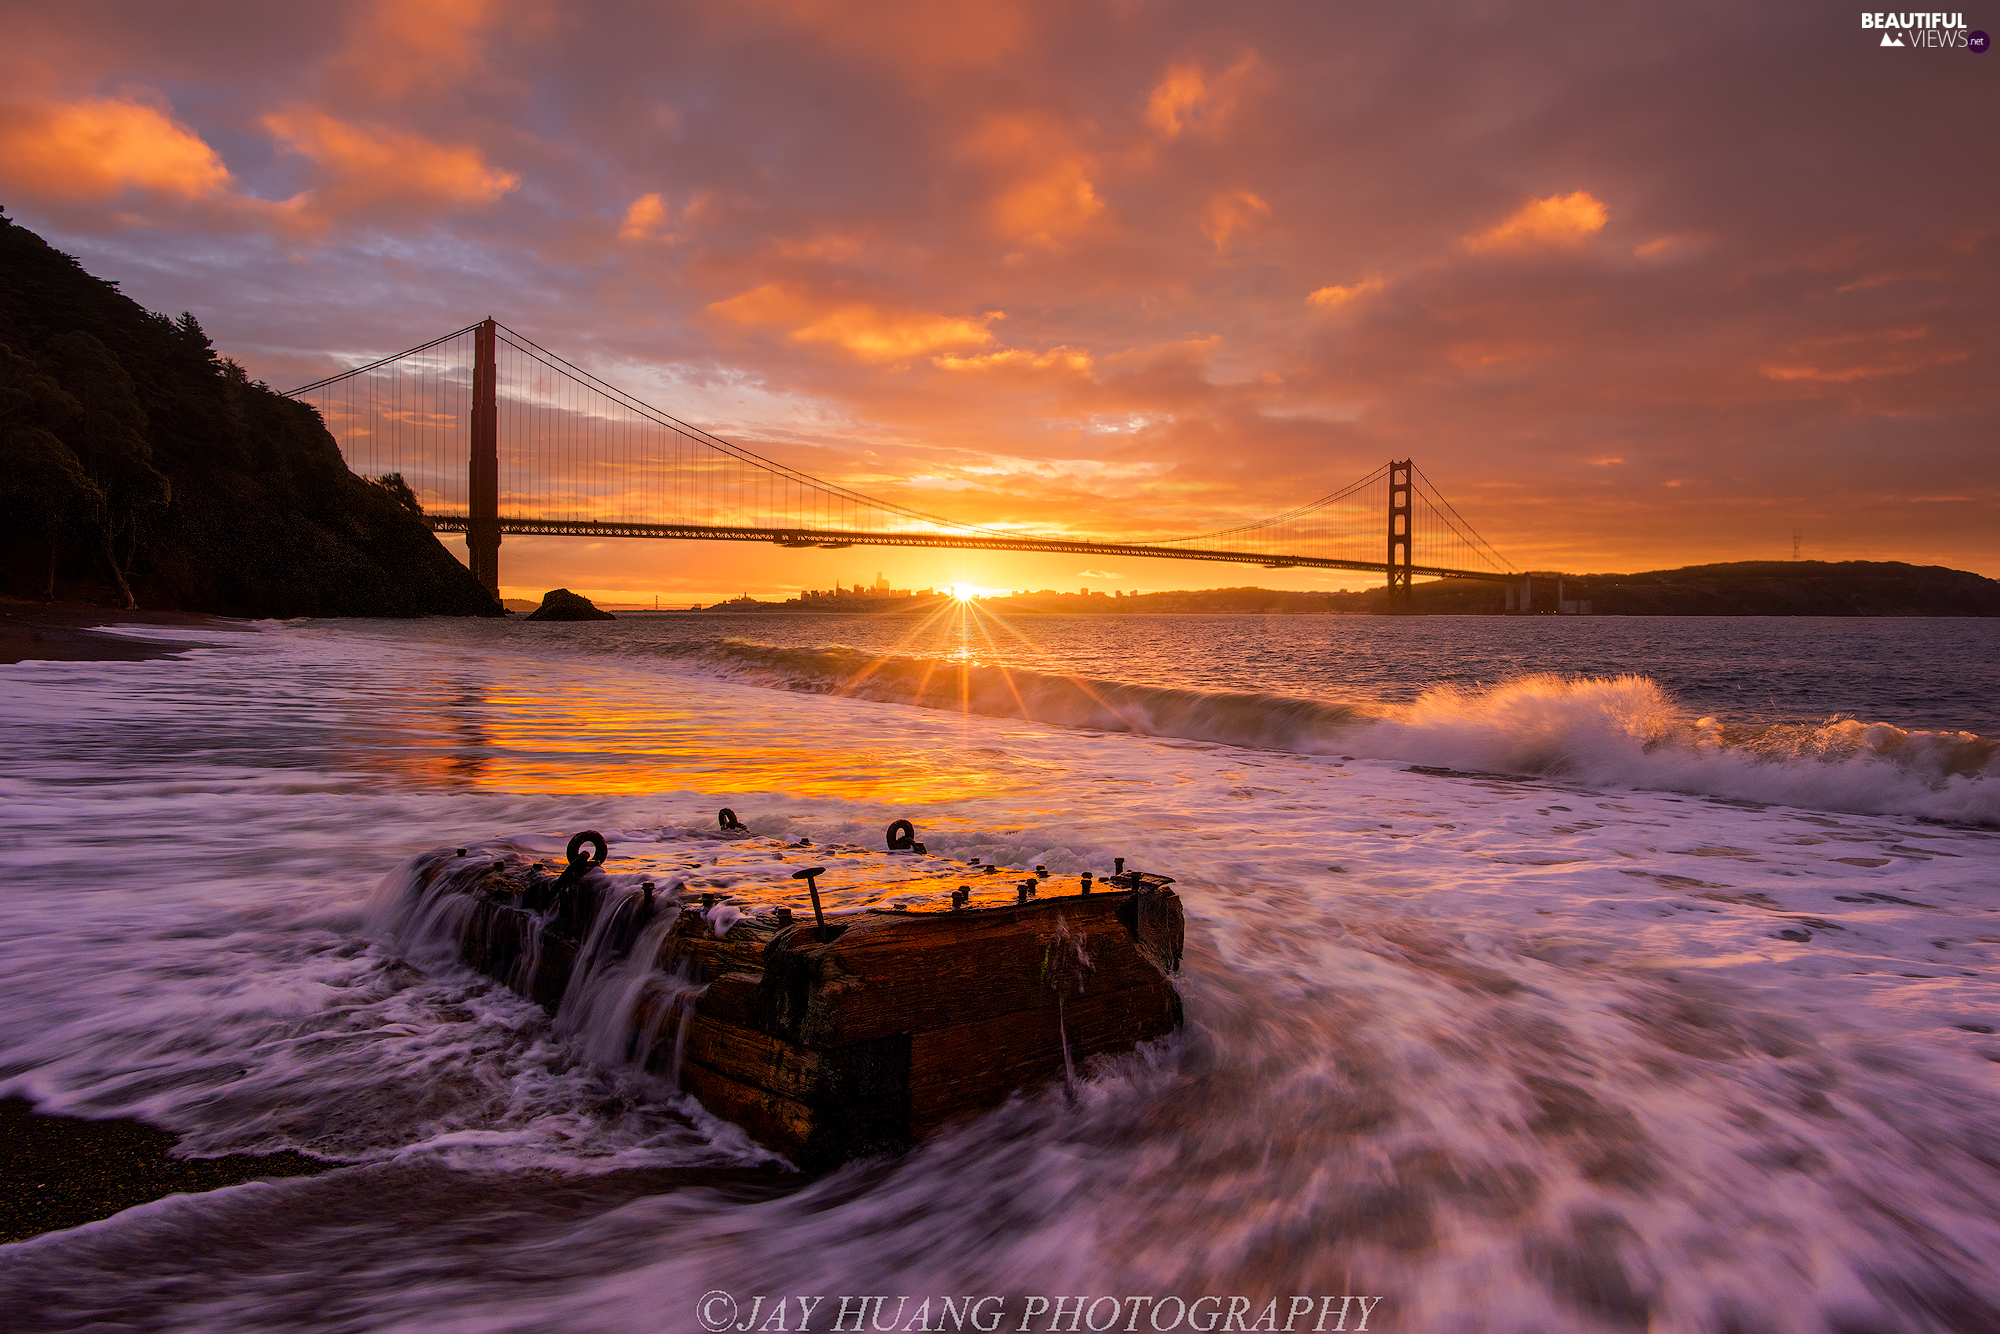 Most Golden Gate Bridge, The United States, Great Sunsets, clouds, Golden Gate Strait, State of California